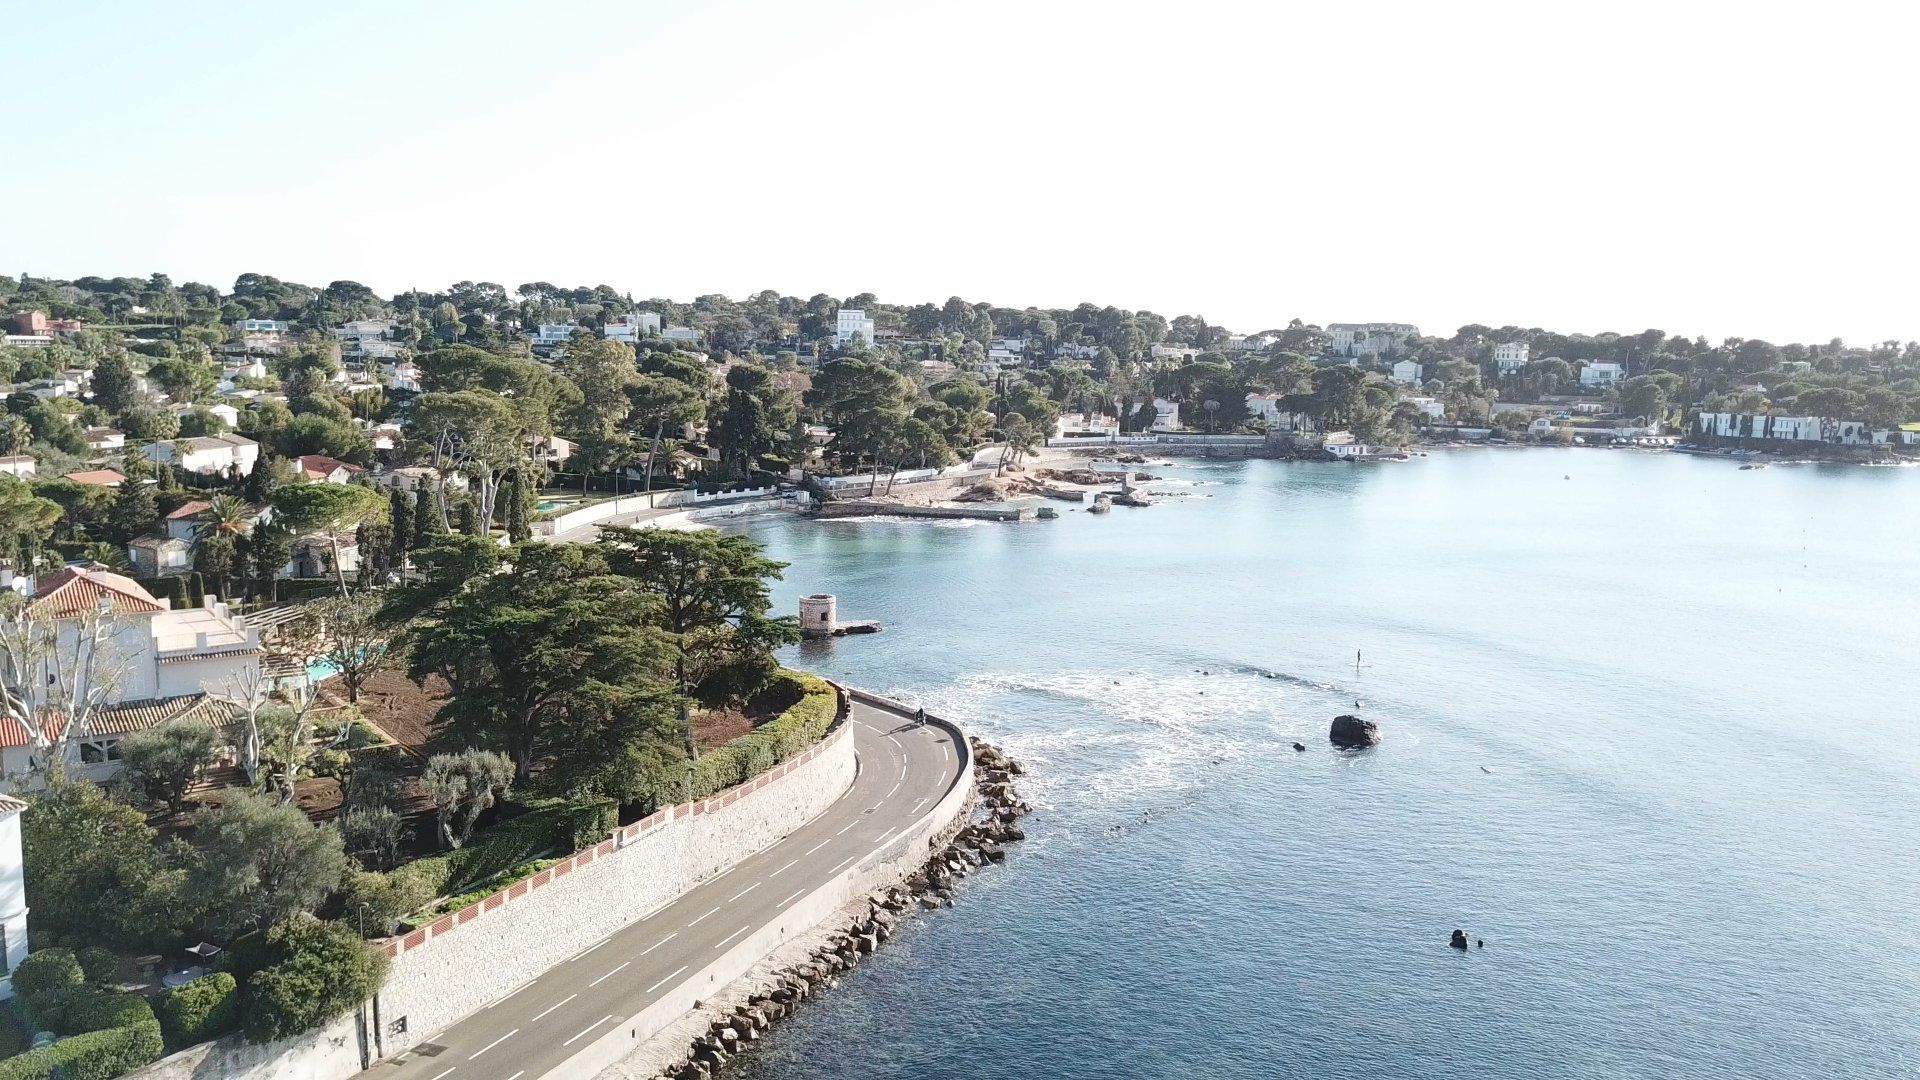 Cap d'Antibes by drone. #Antibes #Côtedazur #juanlespins #CapdAntibes #FrenchRiviera #france #SuddelaFrance #SouthofFrance #Drone #DjiMavicPro #Aerialview #Dji